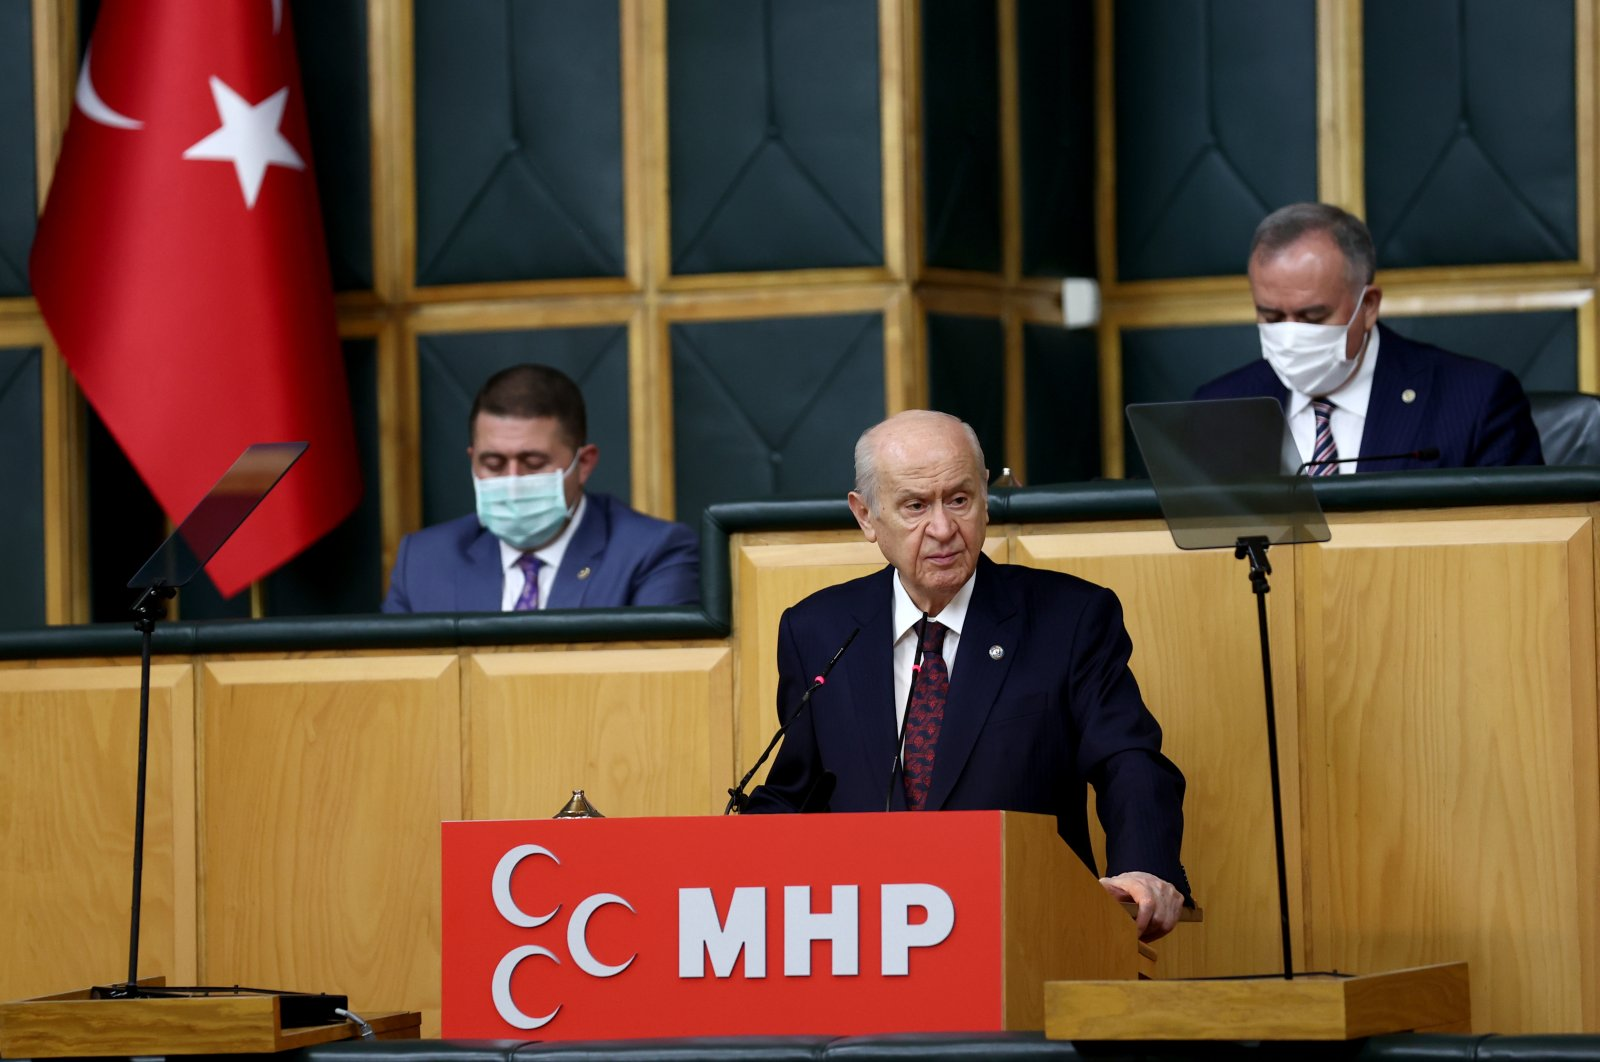 MHP Chairperson Devlet Bahçeli speaks at his party's parliamentary group meeting at the Turkish Parliament in Ankara, July 13, 2021. (AA Photo)